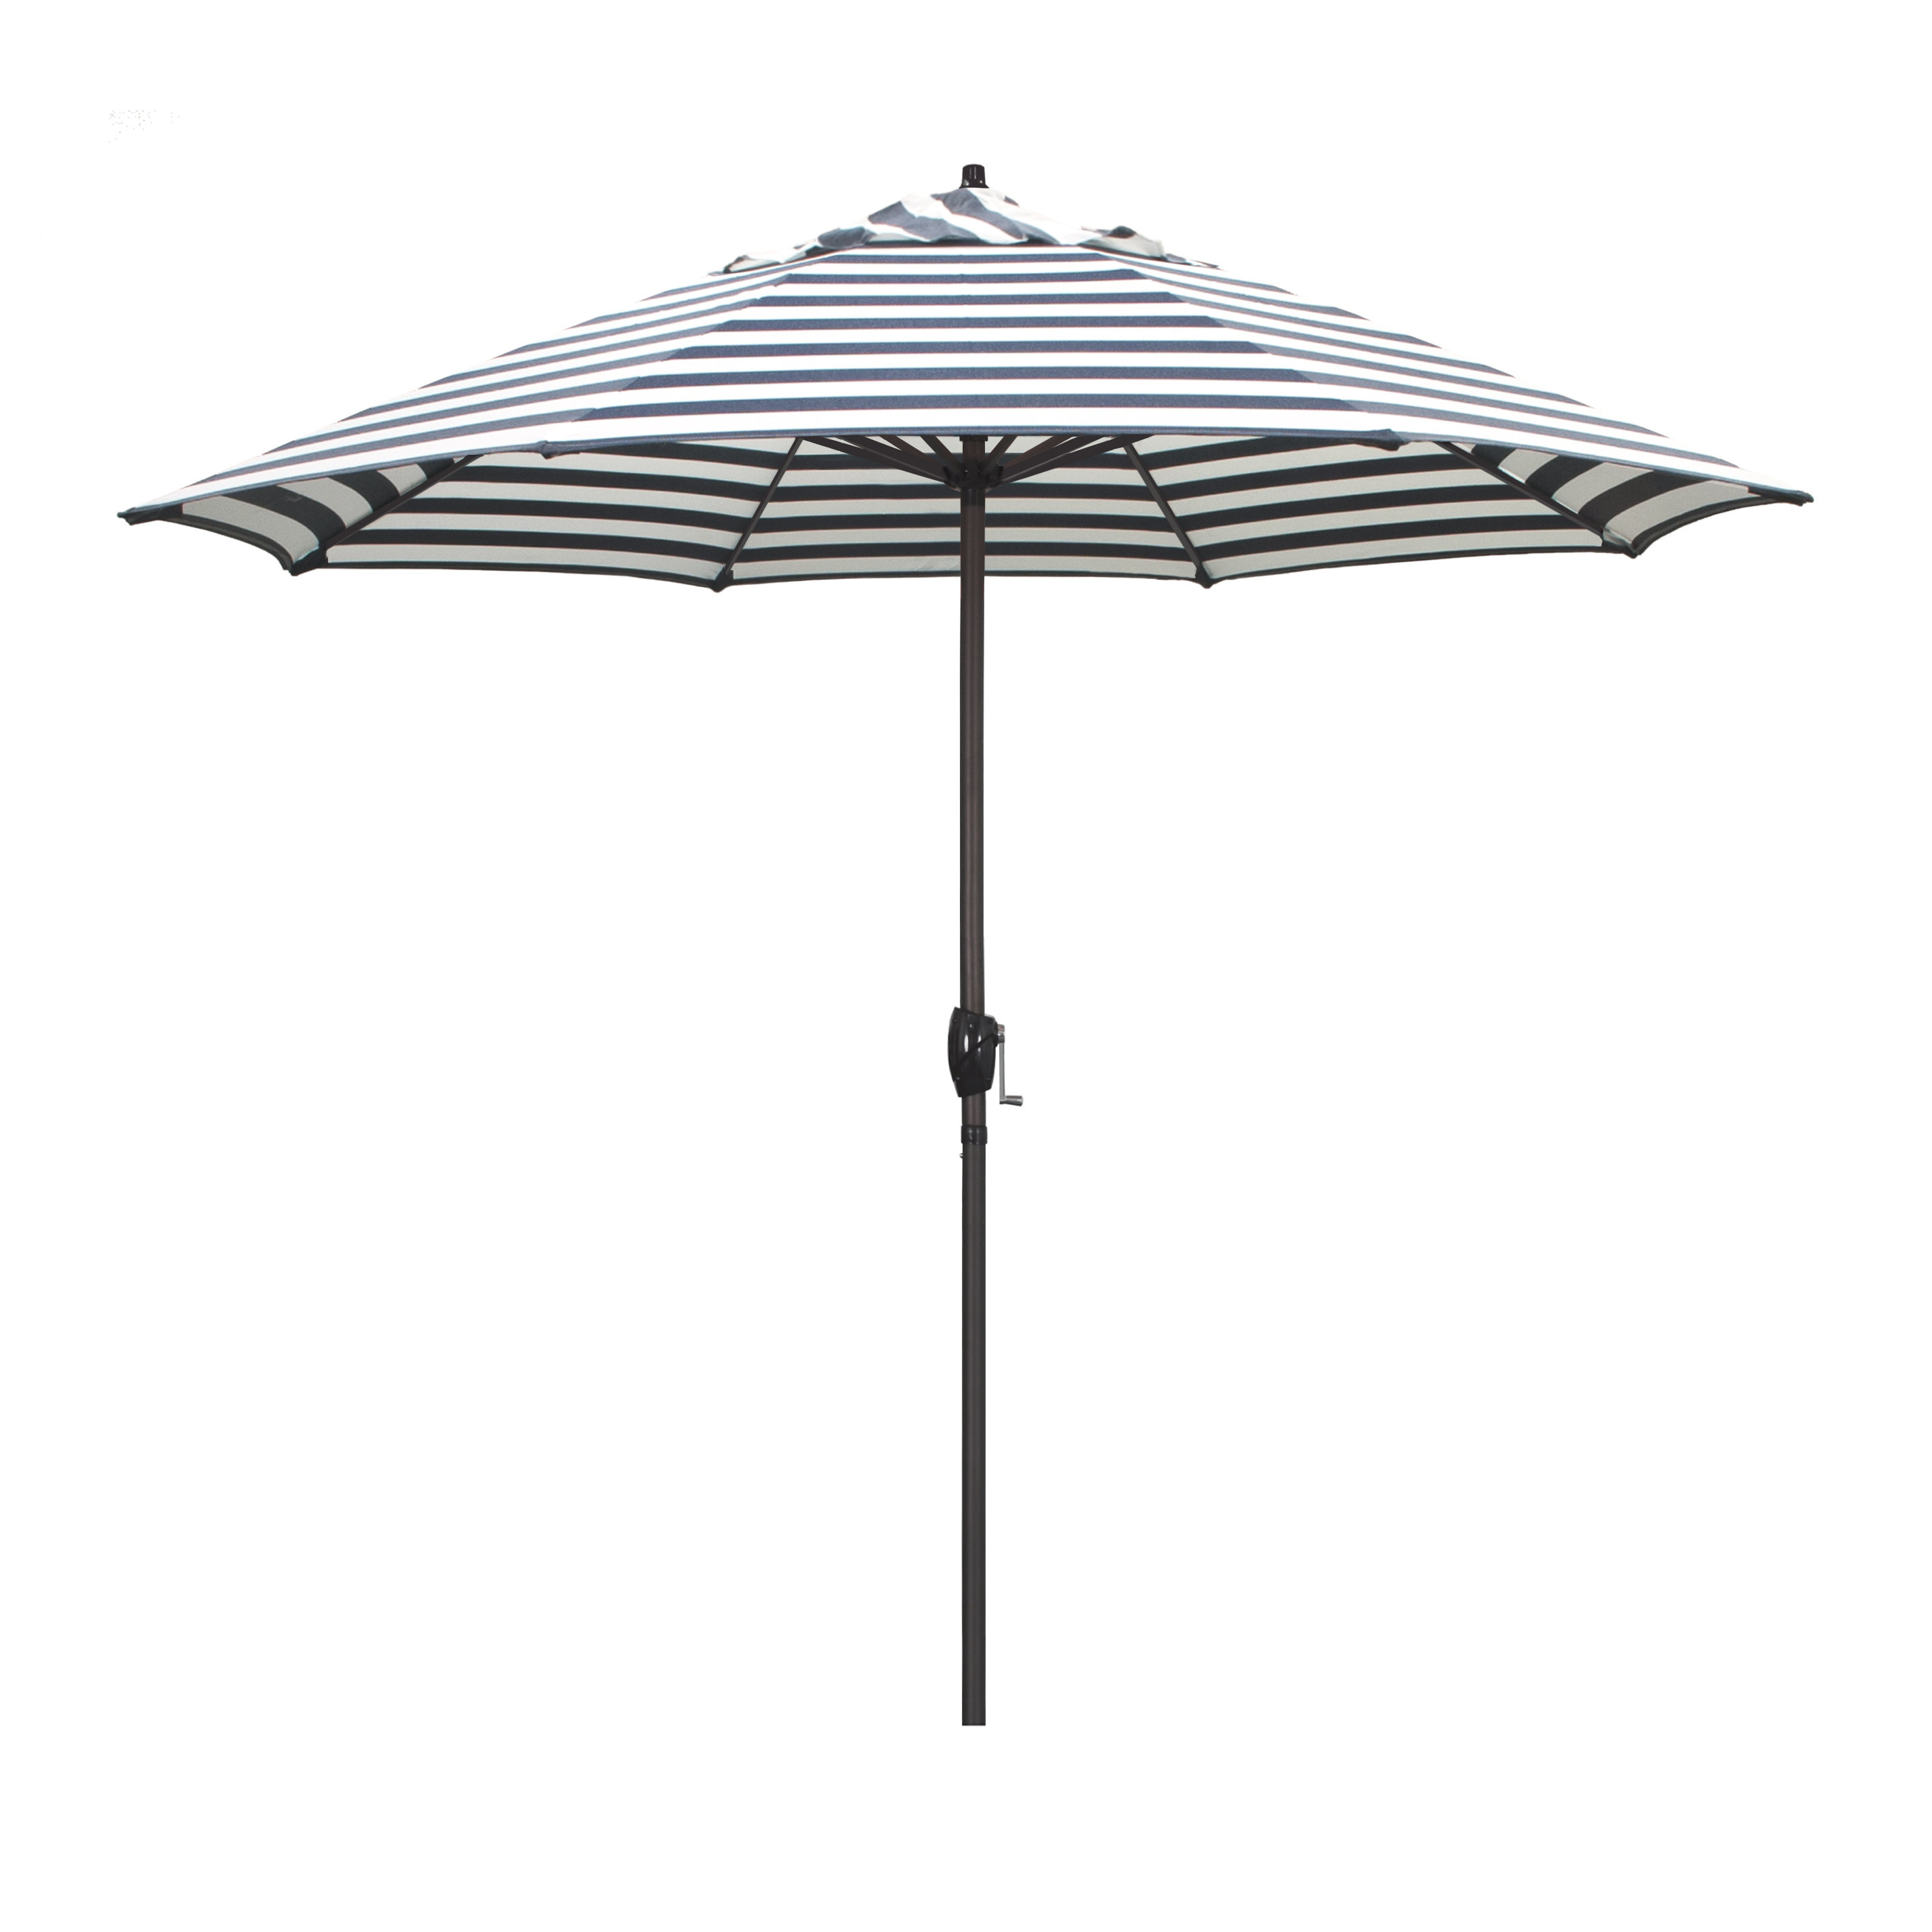 Best And Newest Cardine 9' Market Umbrella For Ryant Market Umbrellas (View 7 of 20)